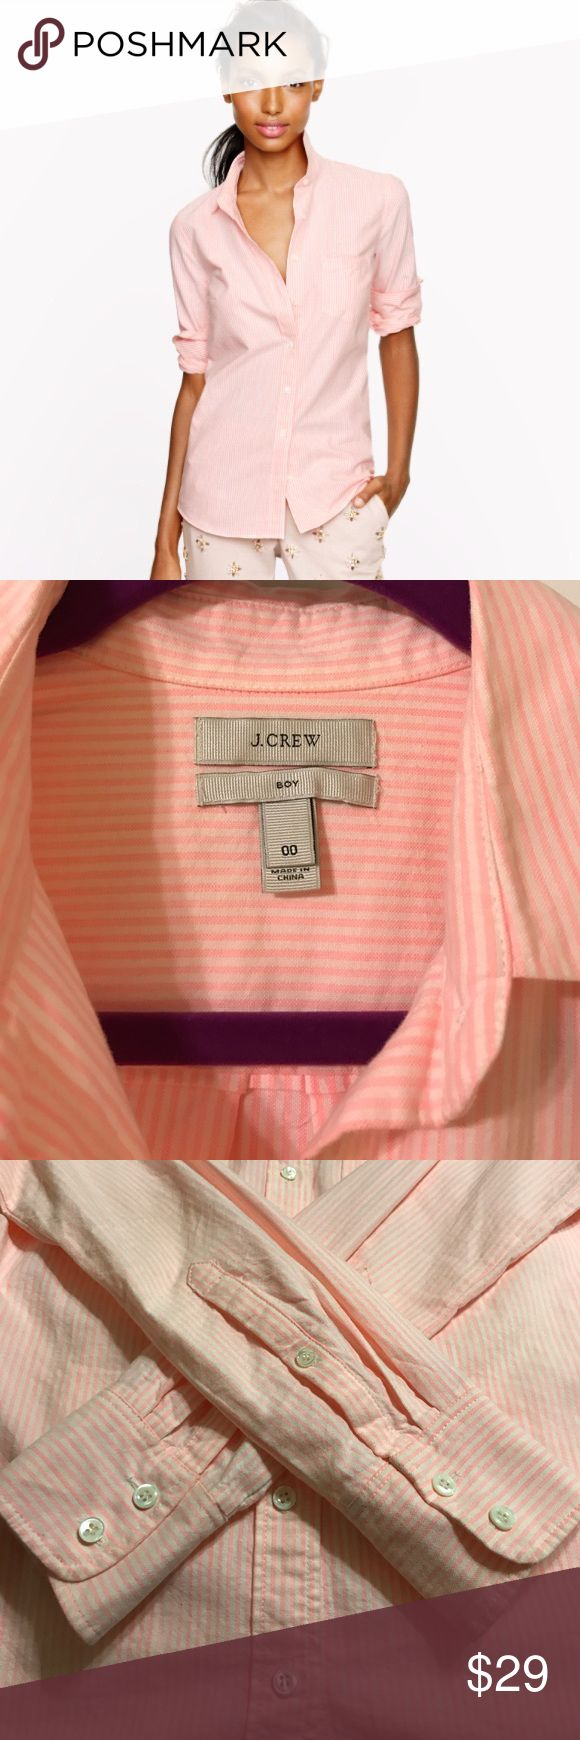 """J CREW Oxford Shirt J CREW Women's Oxford shirt in """"boy"""" fit in a light pink and white stripped. Shirt is 100% cotton so does look best when ironed. Can be dressed up for work or dressed down with cute boyfriend jeans. Shirt is in perfect condition - no marks, stains and all buttons attached J. Crew Tops Button Down Shirts"""